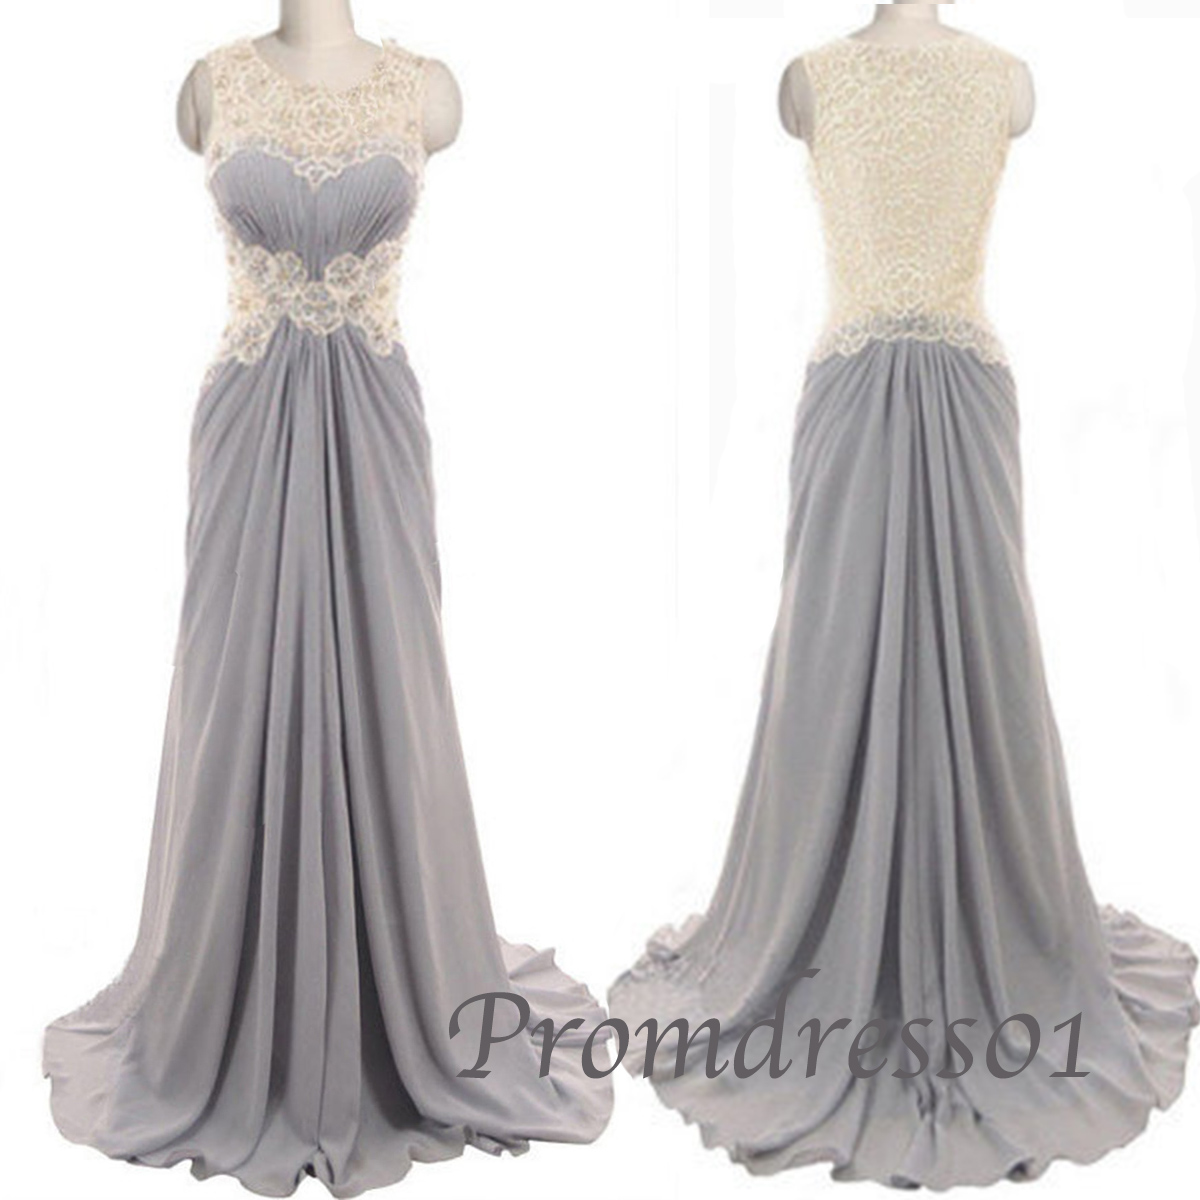 Grey long handmade lace graduation & prom dress | Prom dresses ...